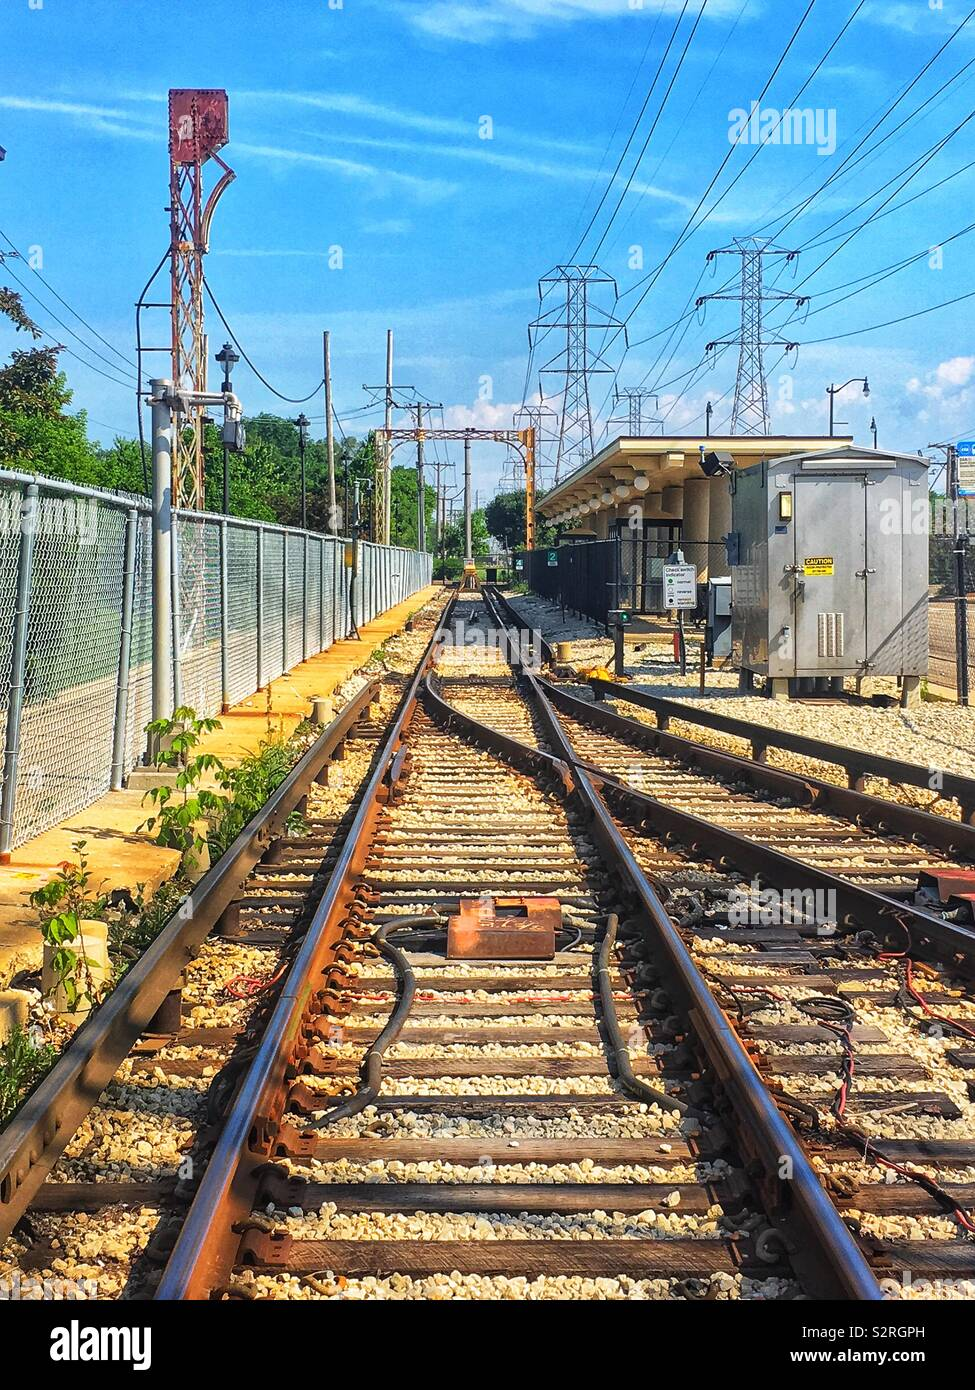 End of the line at Chicago's Skokie Swift CTA public transit rail line. Stock Photo